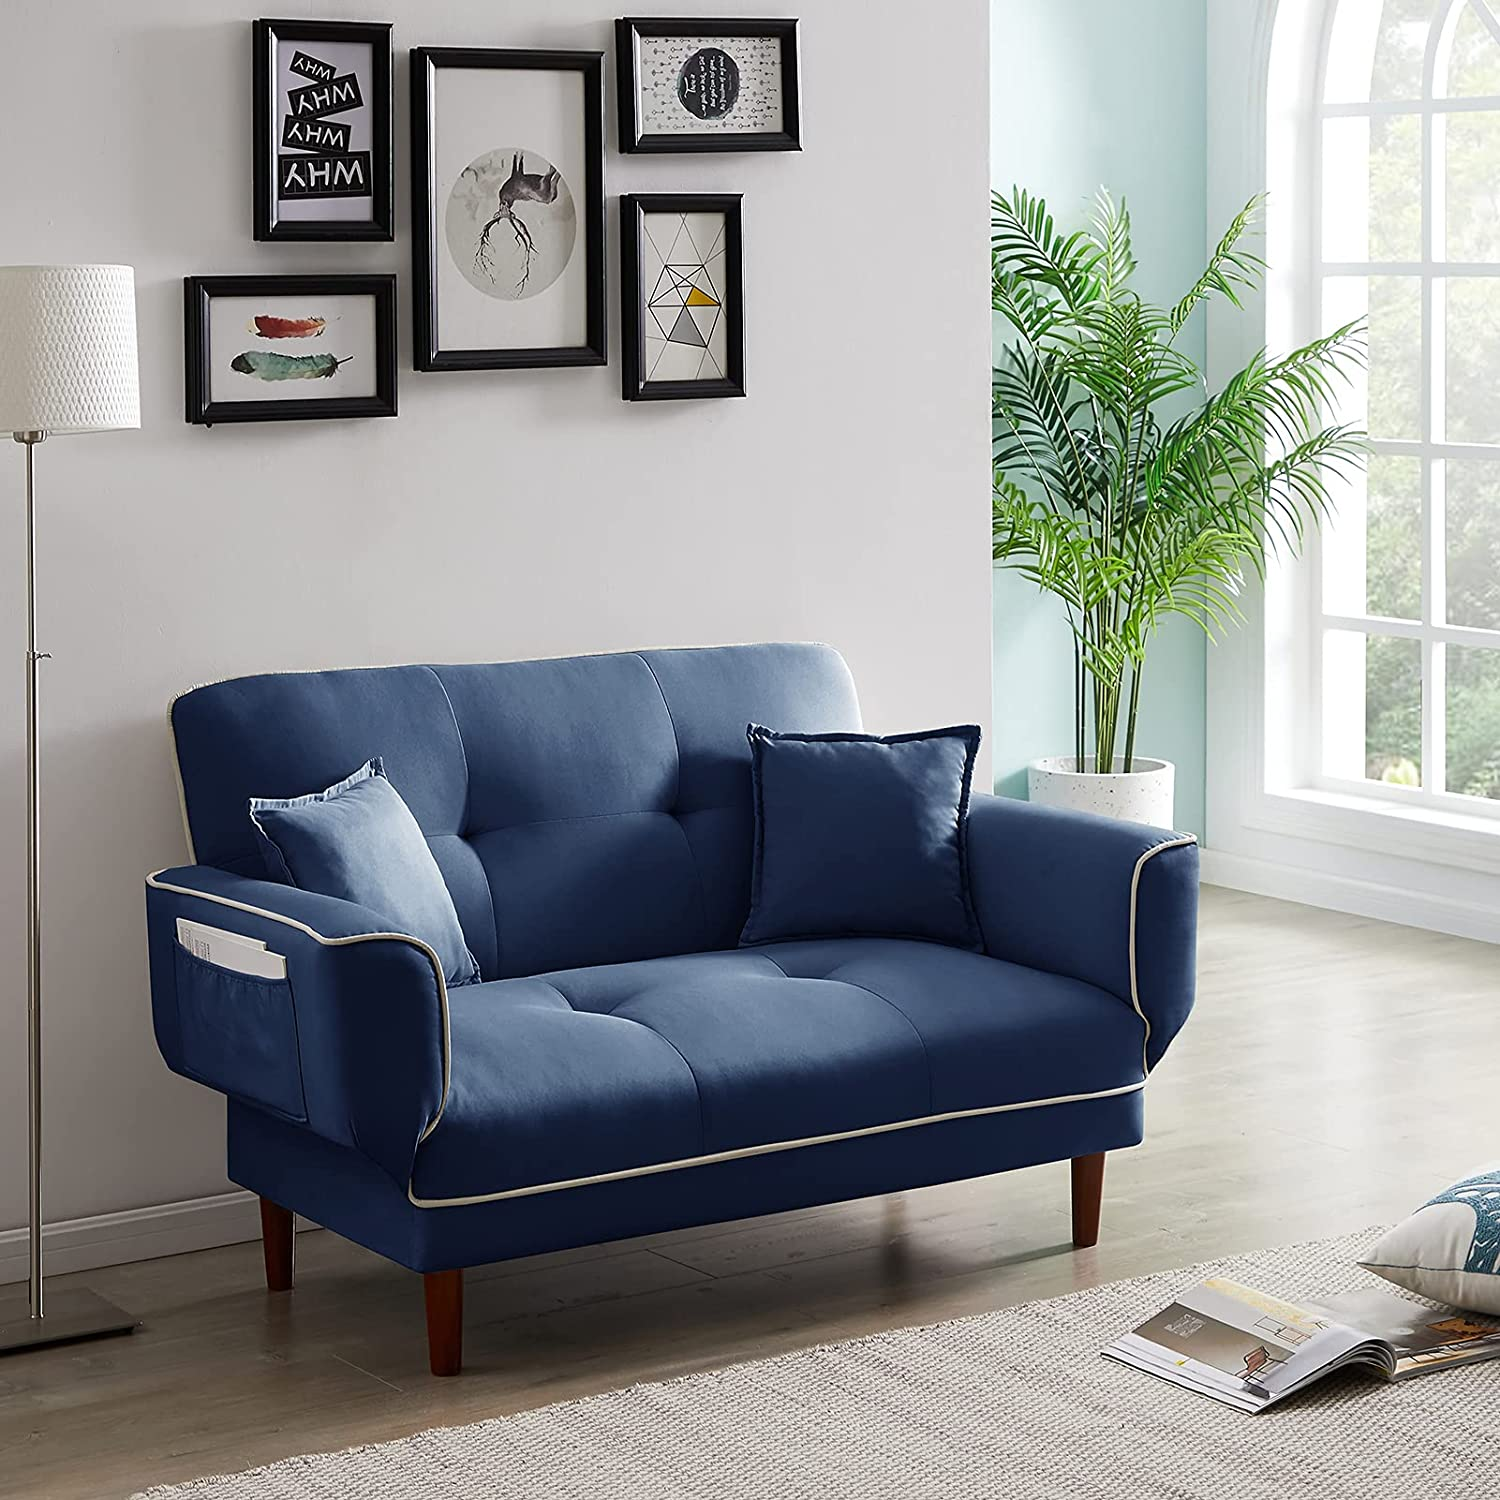 Axgo Sofa Bed Modern Lowest price We OFFer at cheap prices challenge Convertible 4 Folding in Futon 1